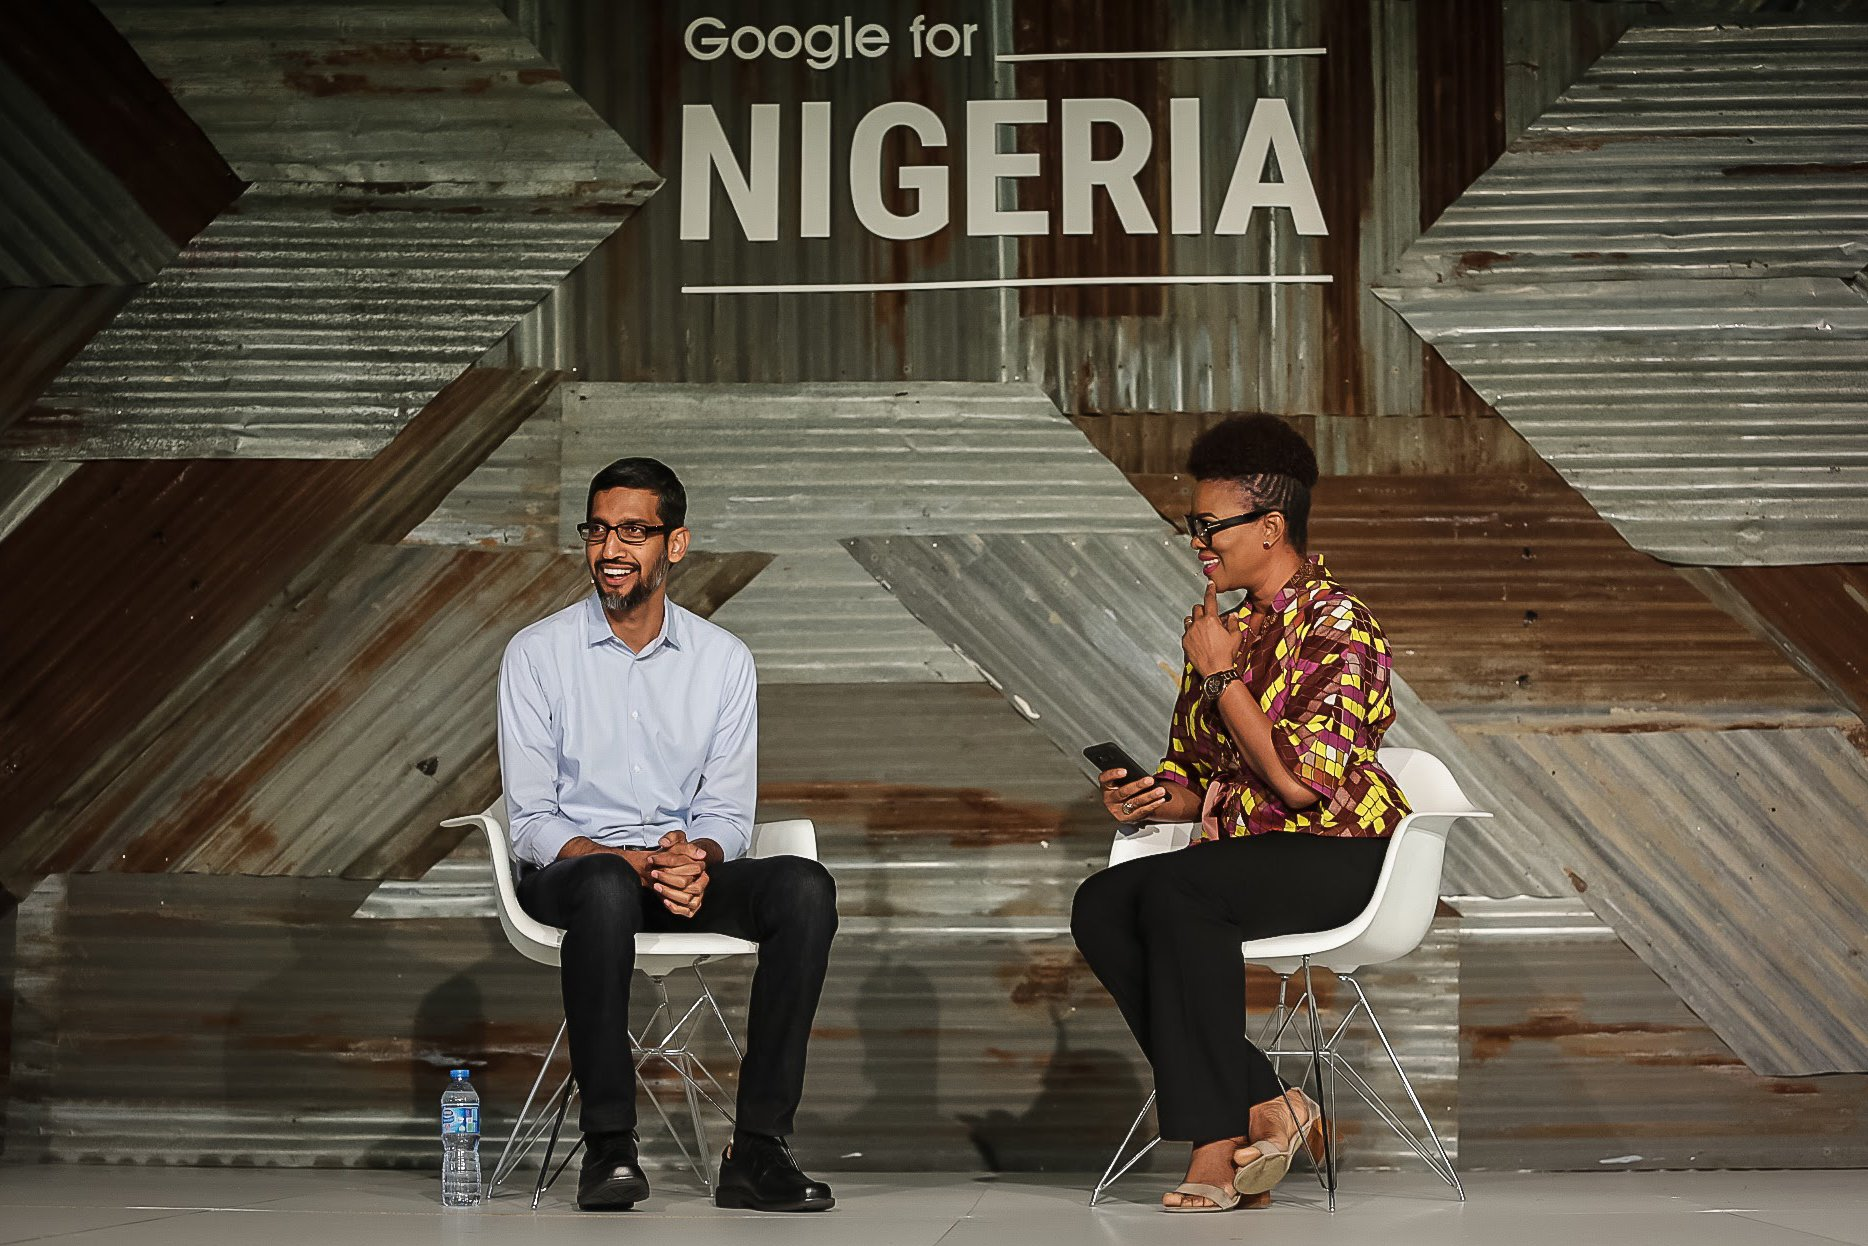 Google for Nigeria - Sundar